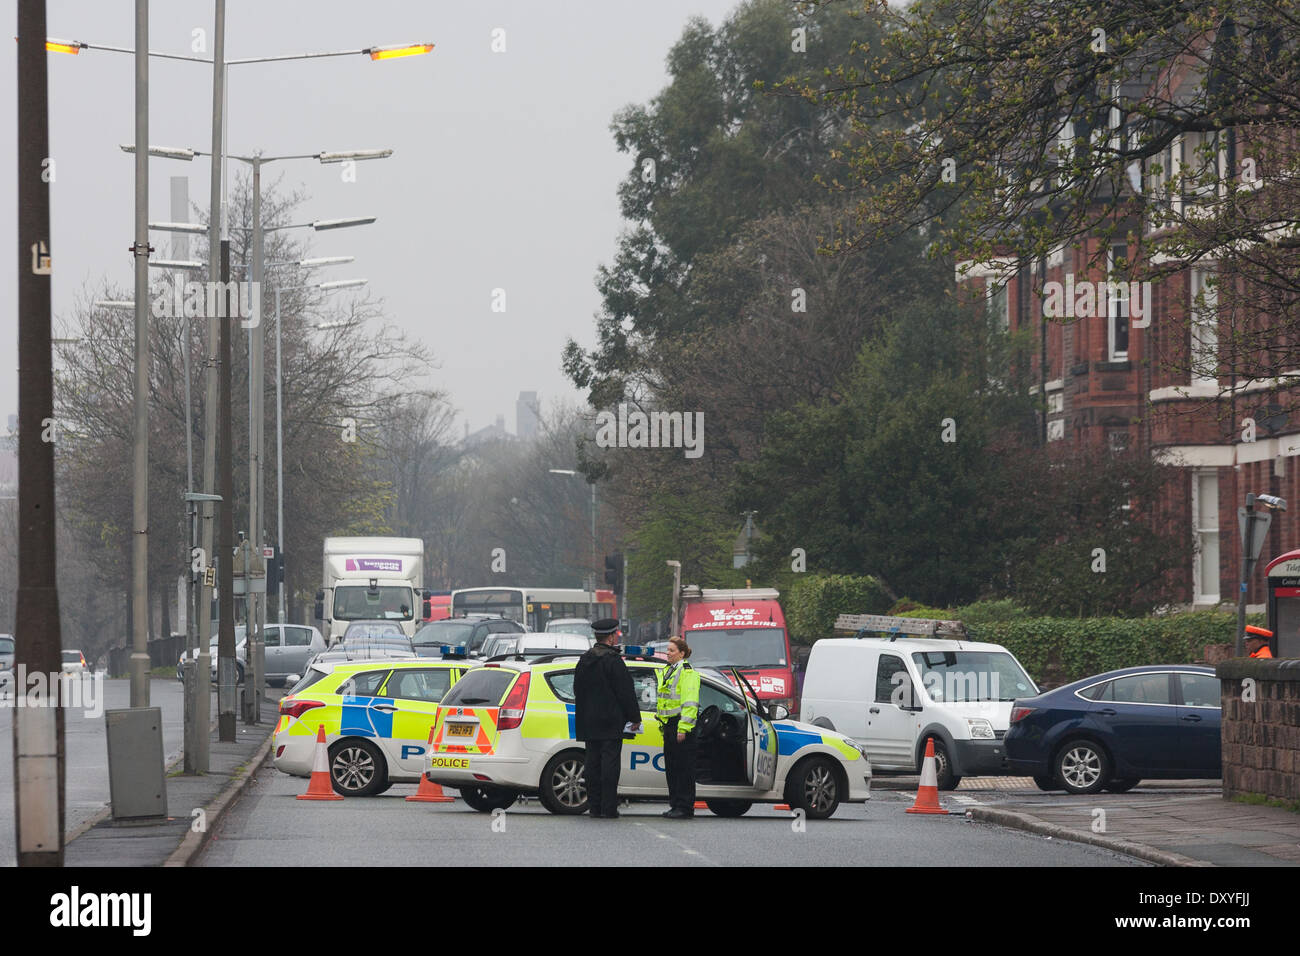 Liverpool, UK - 2nd April 2014: Traffic backs up behind a cordon on Aiburth Road, as police investigate reports of gun shots and damaged cars. Credit:  Adam Vaughan/Alamy Live News - Stock Image